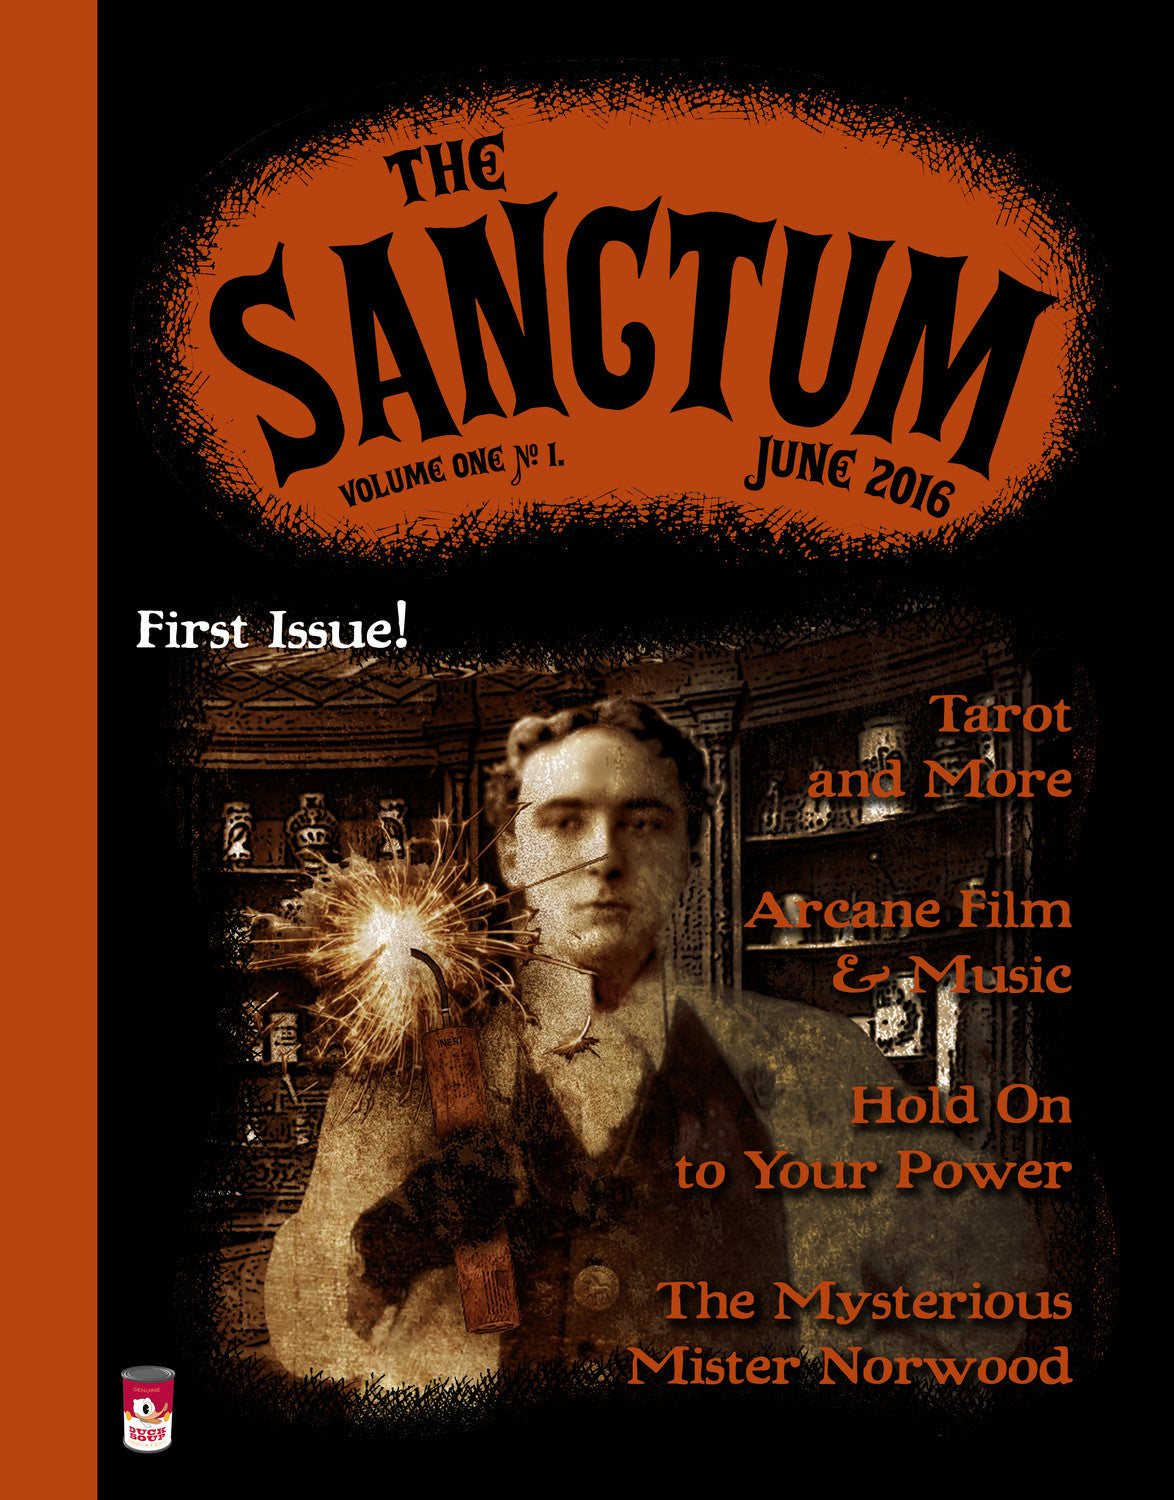 THE SANCTUM, Vol. 1, #1: PDF Edition